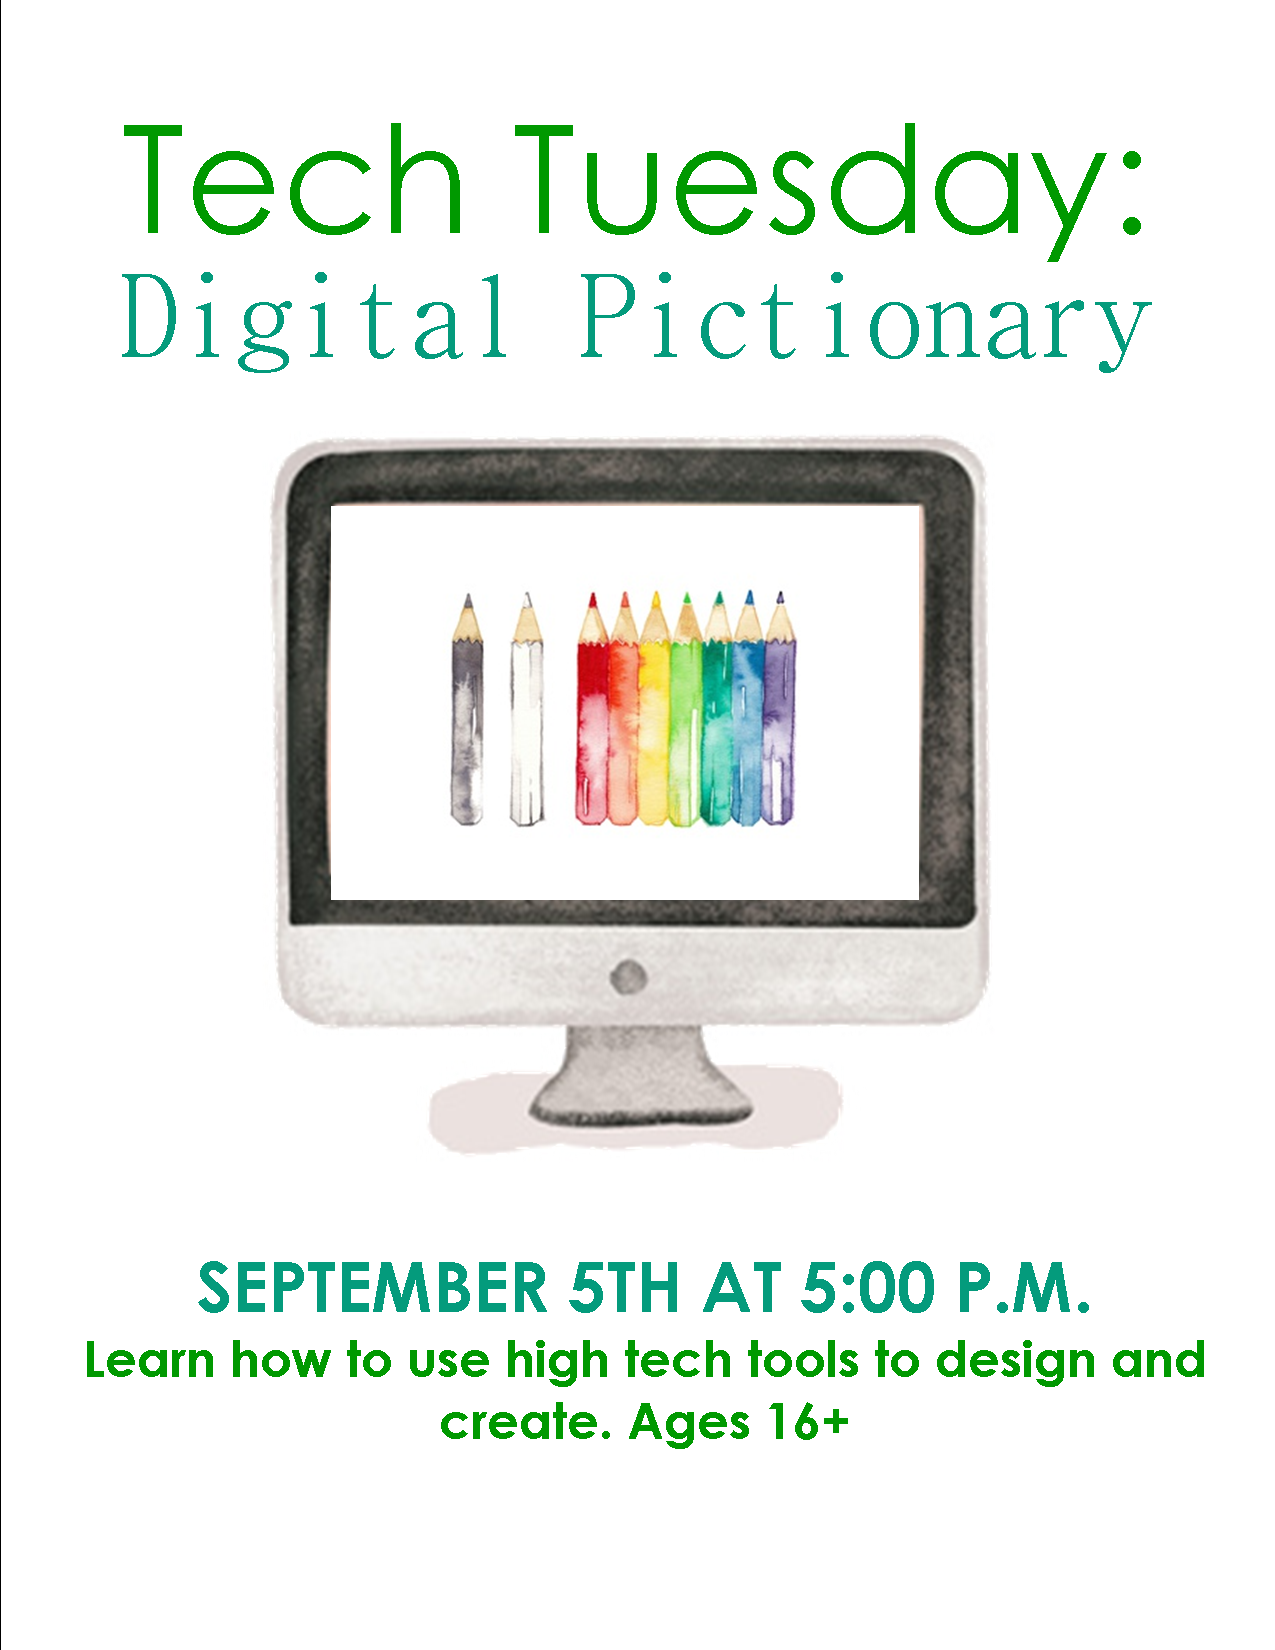 Tech Tuesday: Digital Pictionary